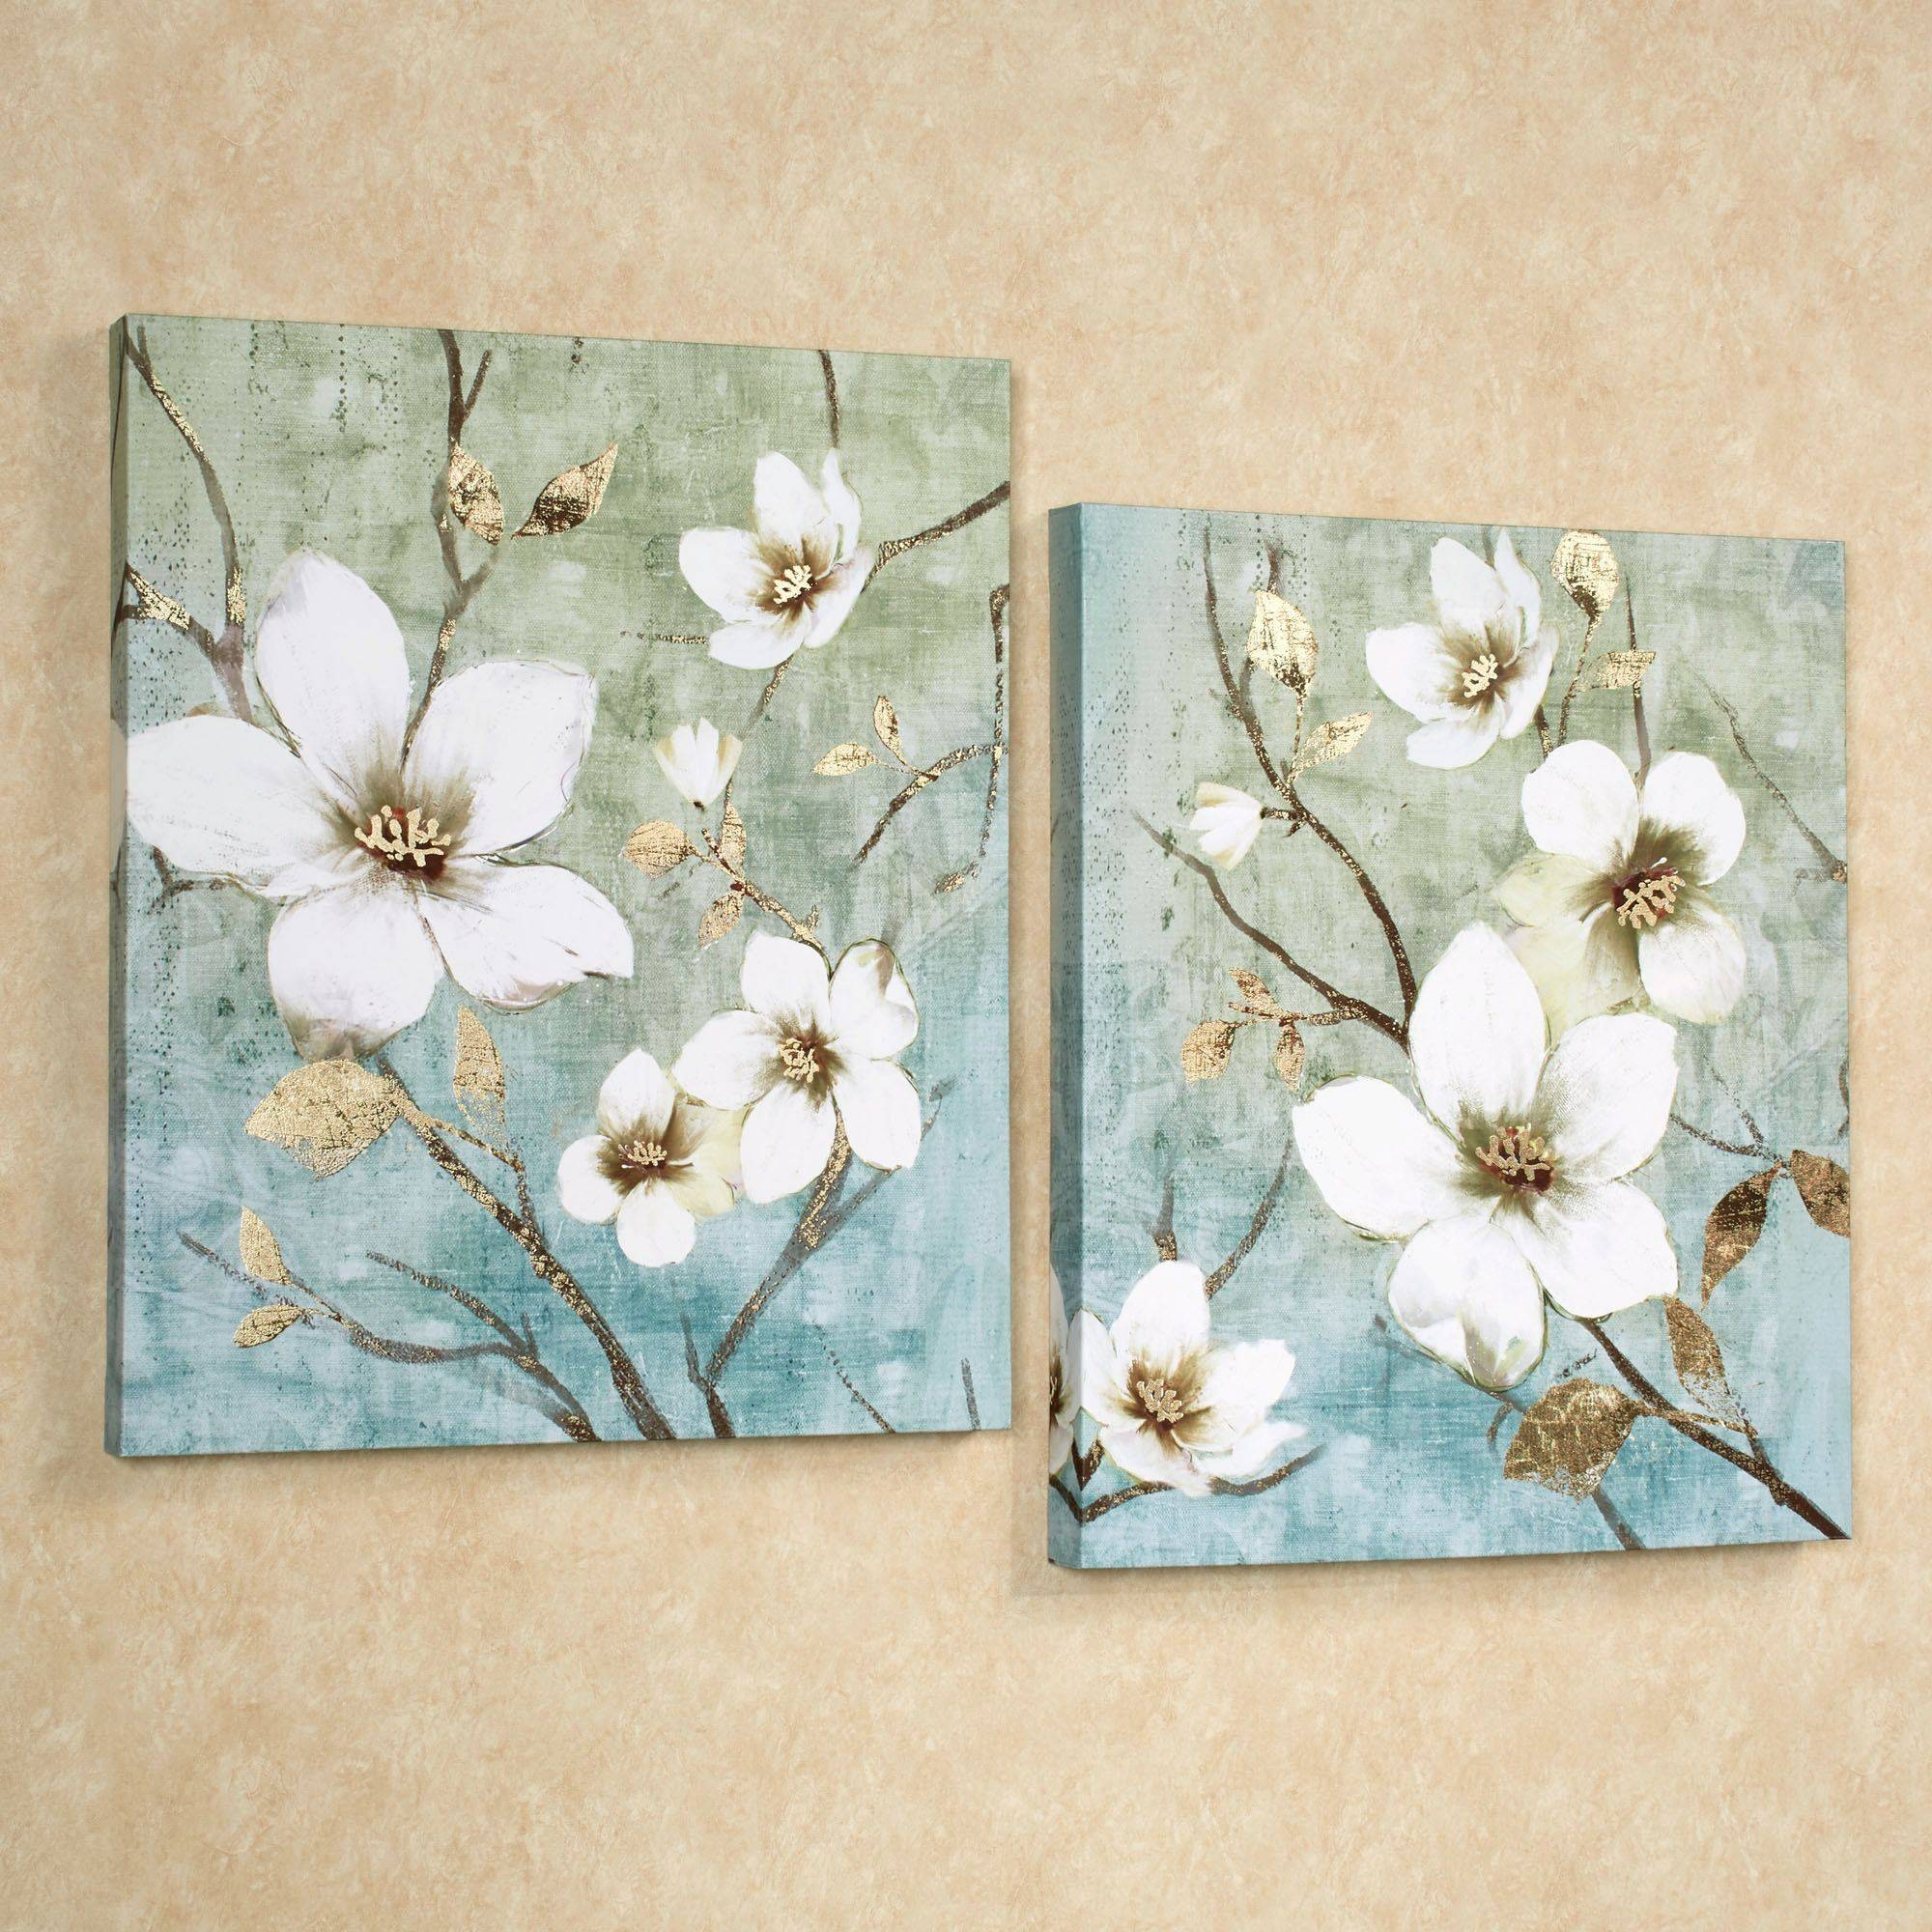 In Bloom Floral Canvas Wall Art Set Pertaining To Newest Floral Wall Art Canvas (View 3 of 20)